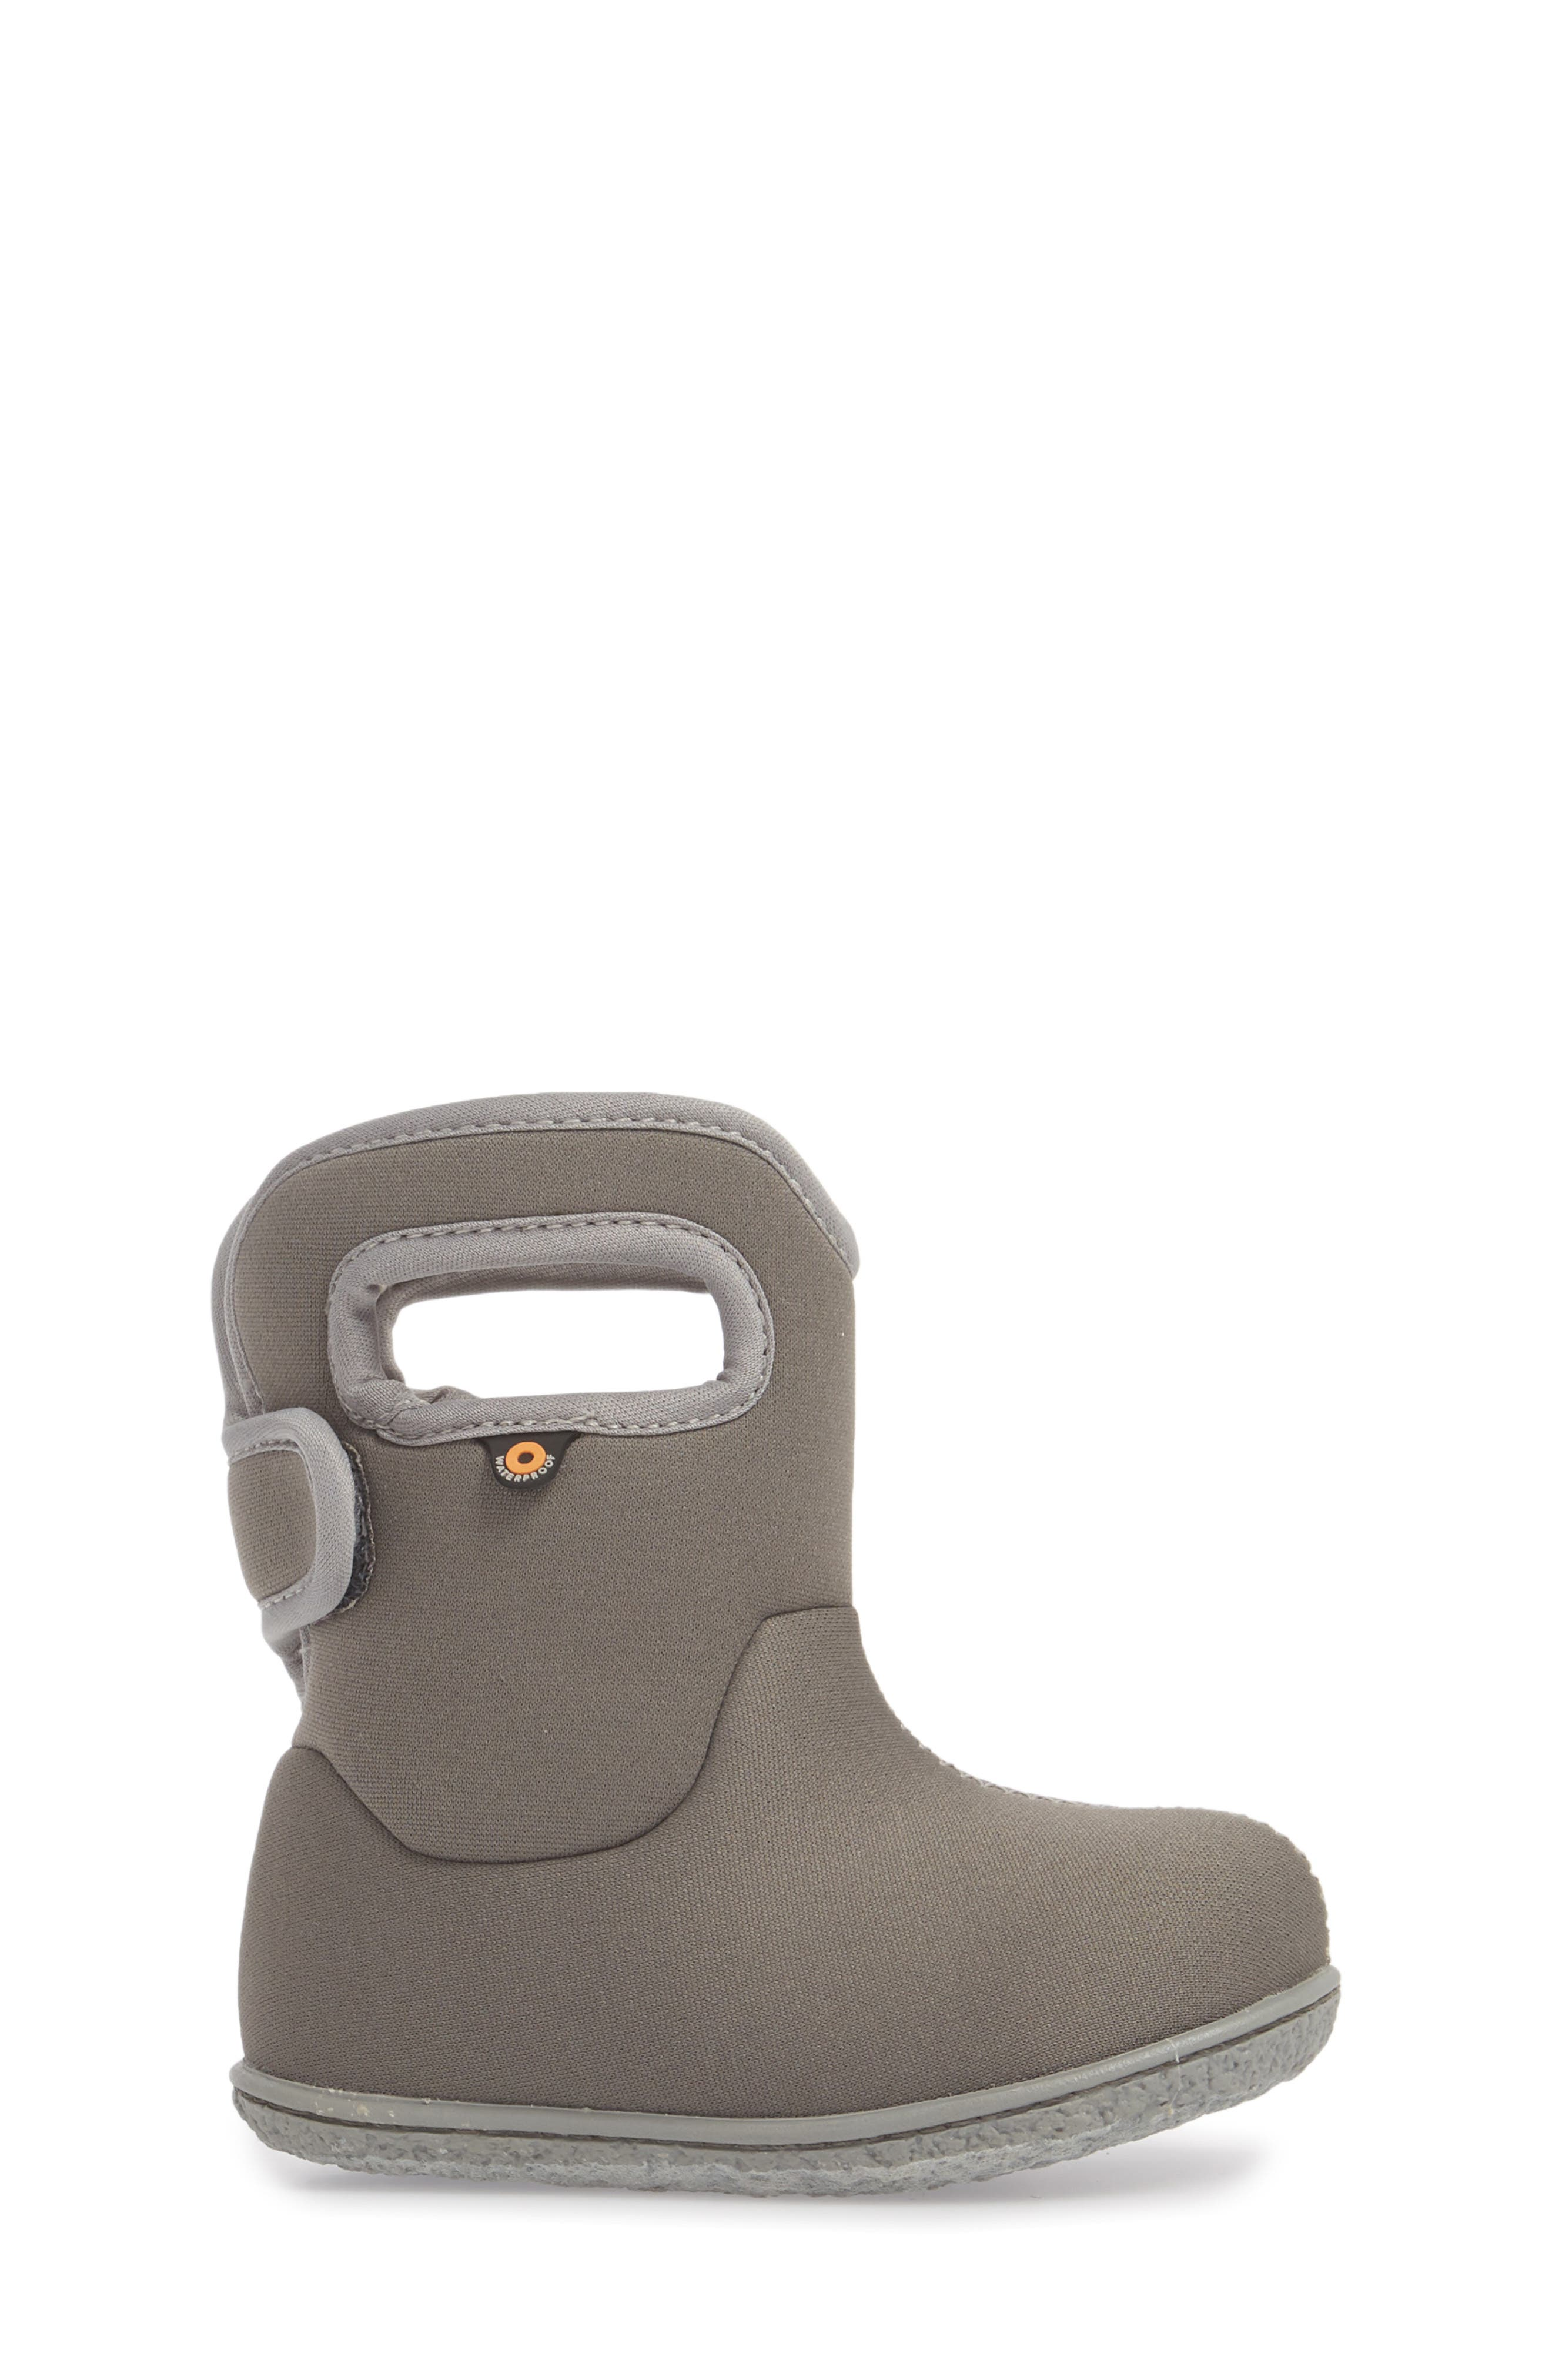 Classic Solid Insulated Waterproof Rain Boot,                             Alternate thumbnail 3, color,                             Light Gray Multi